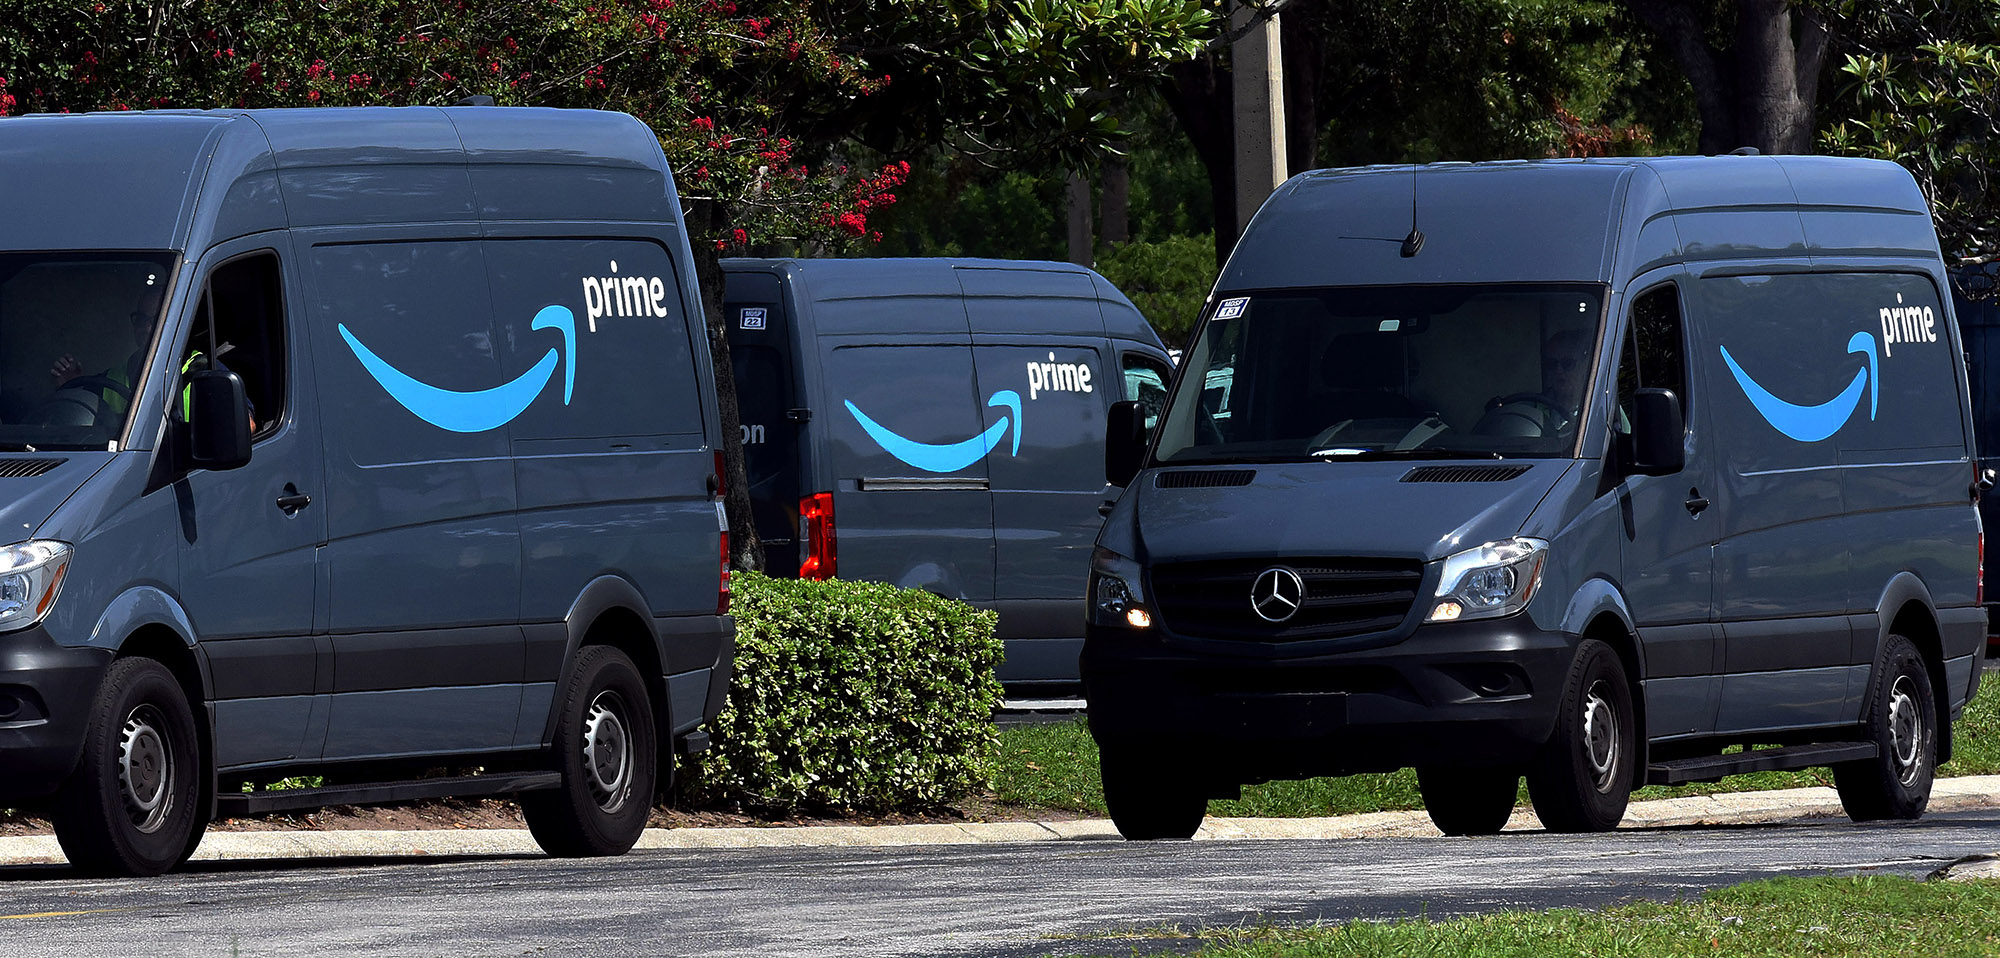 Amazon's Answer to Delivery Driver Shortage: Recruit Pot Smokers